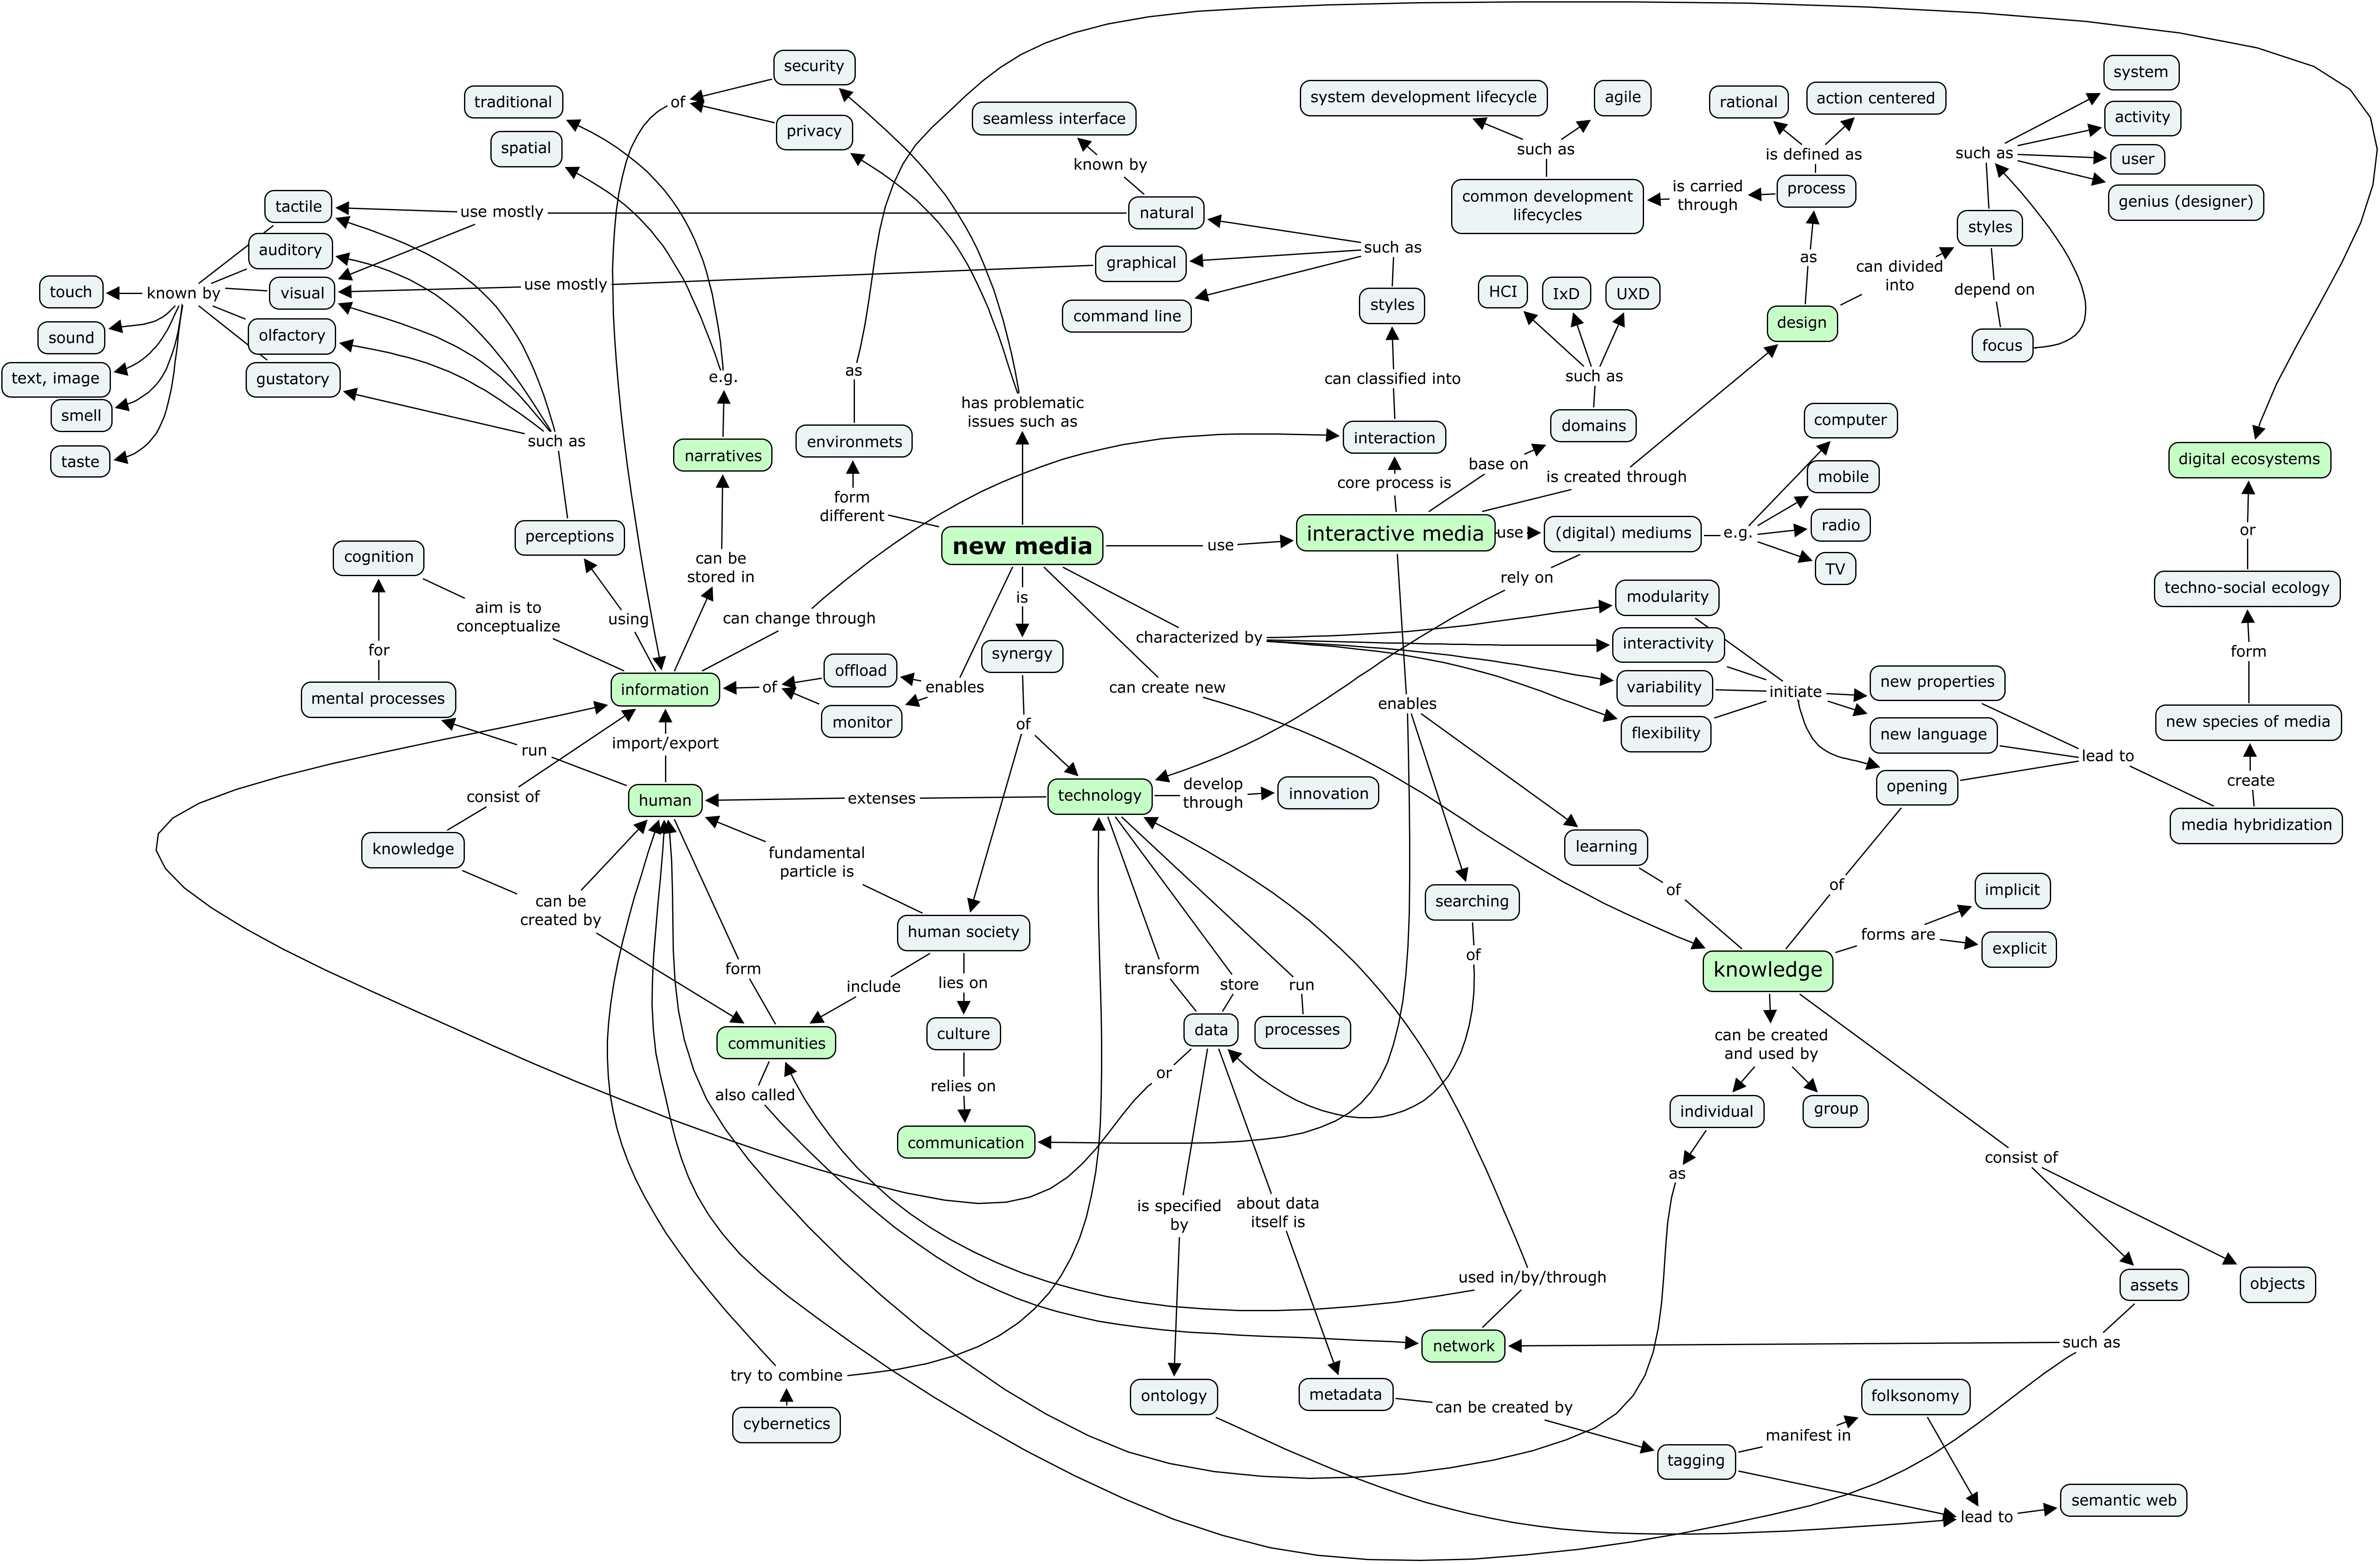 http://moonladder.files.wordpress.com/2011/10/meren-tamm_final-concept-map.jpg